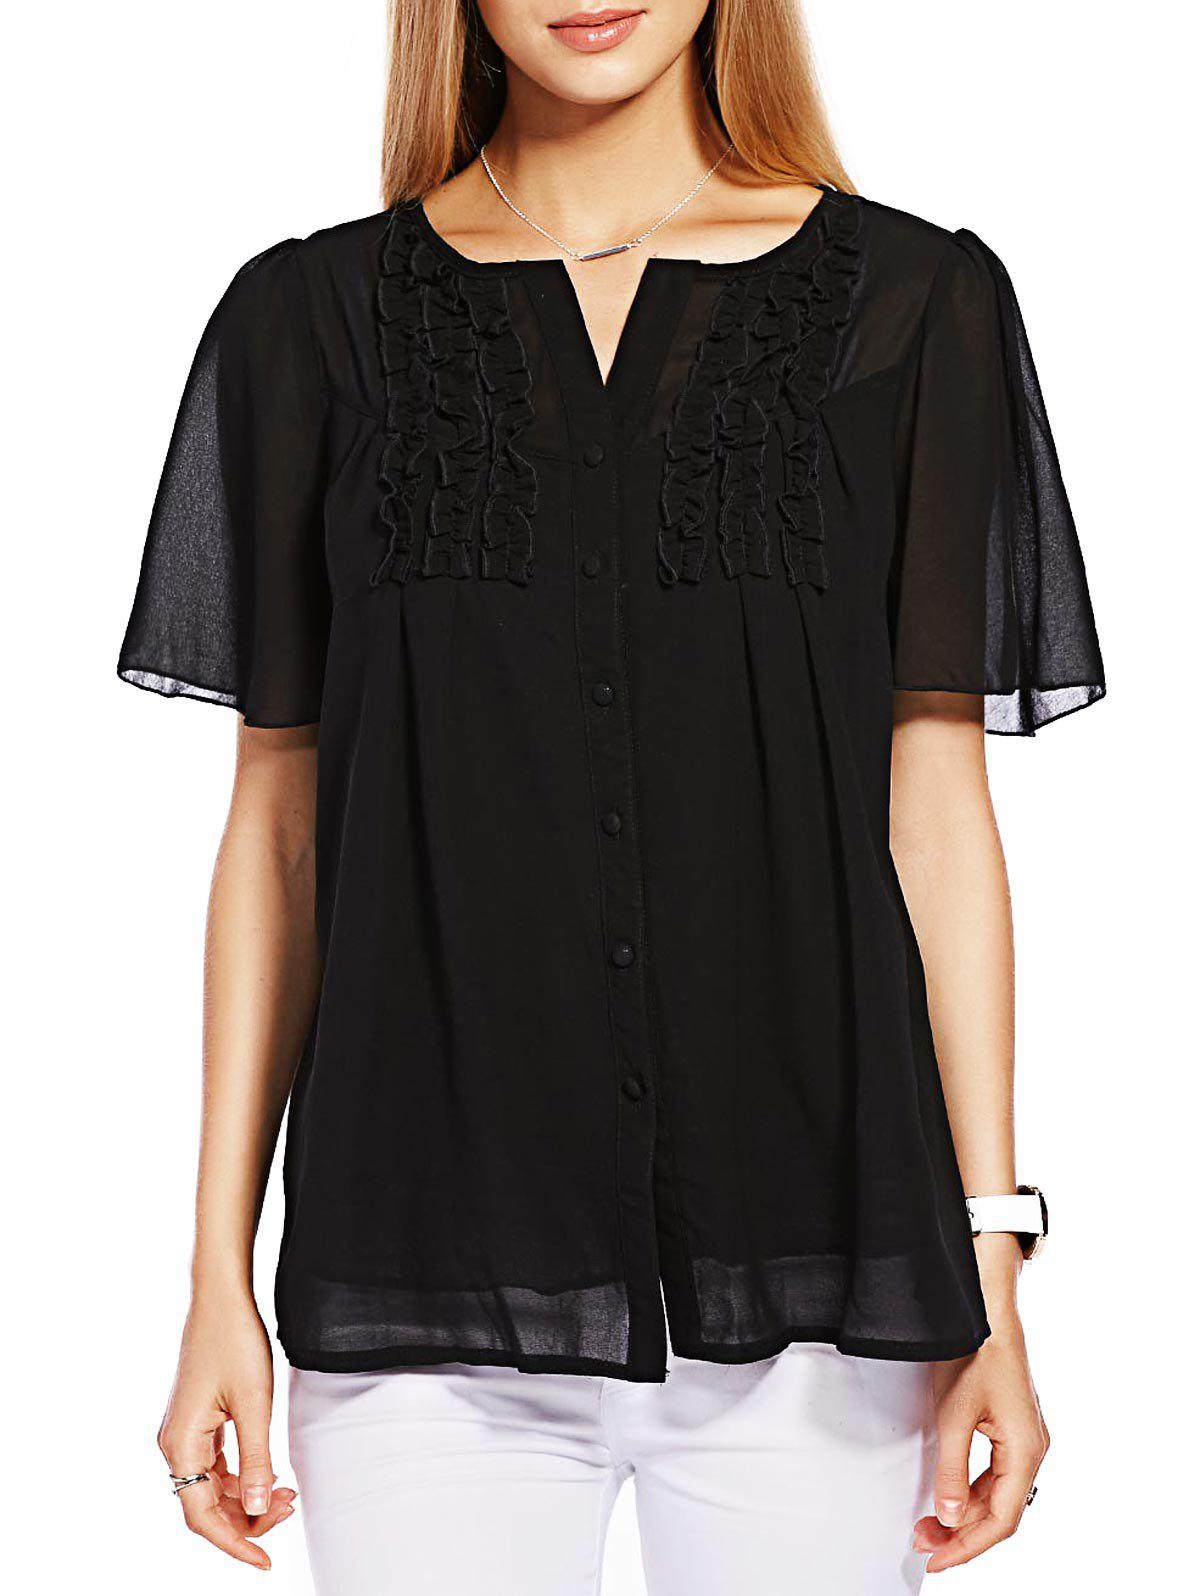 Button Ruffle Chiffon Top - BLACK 4XL